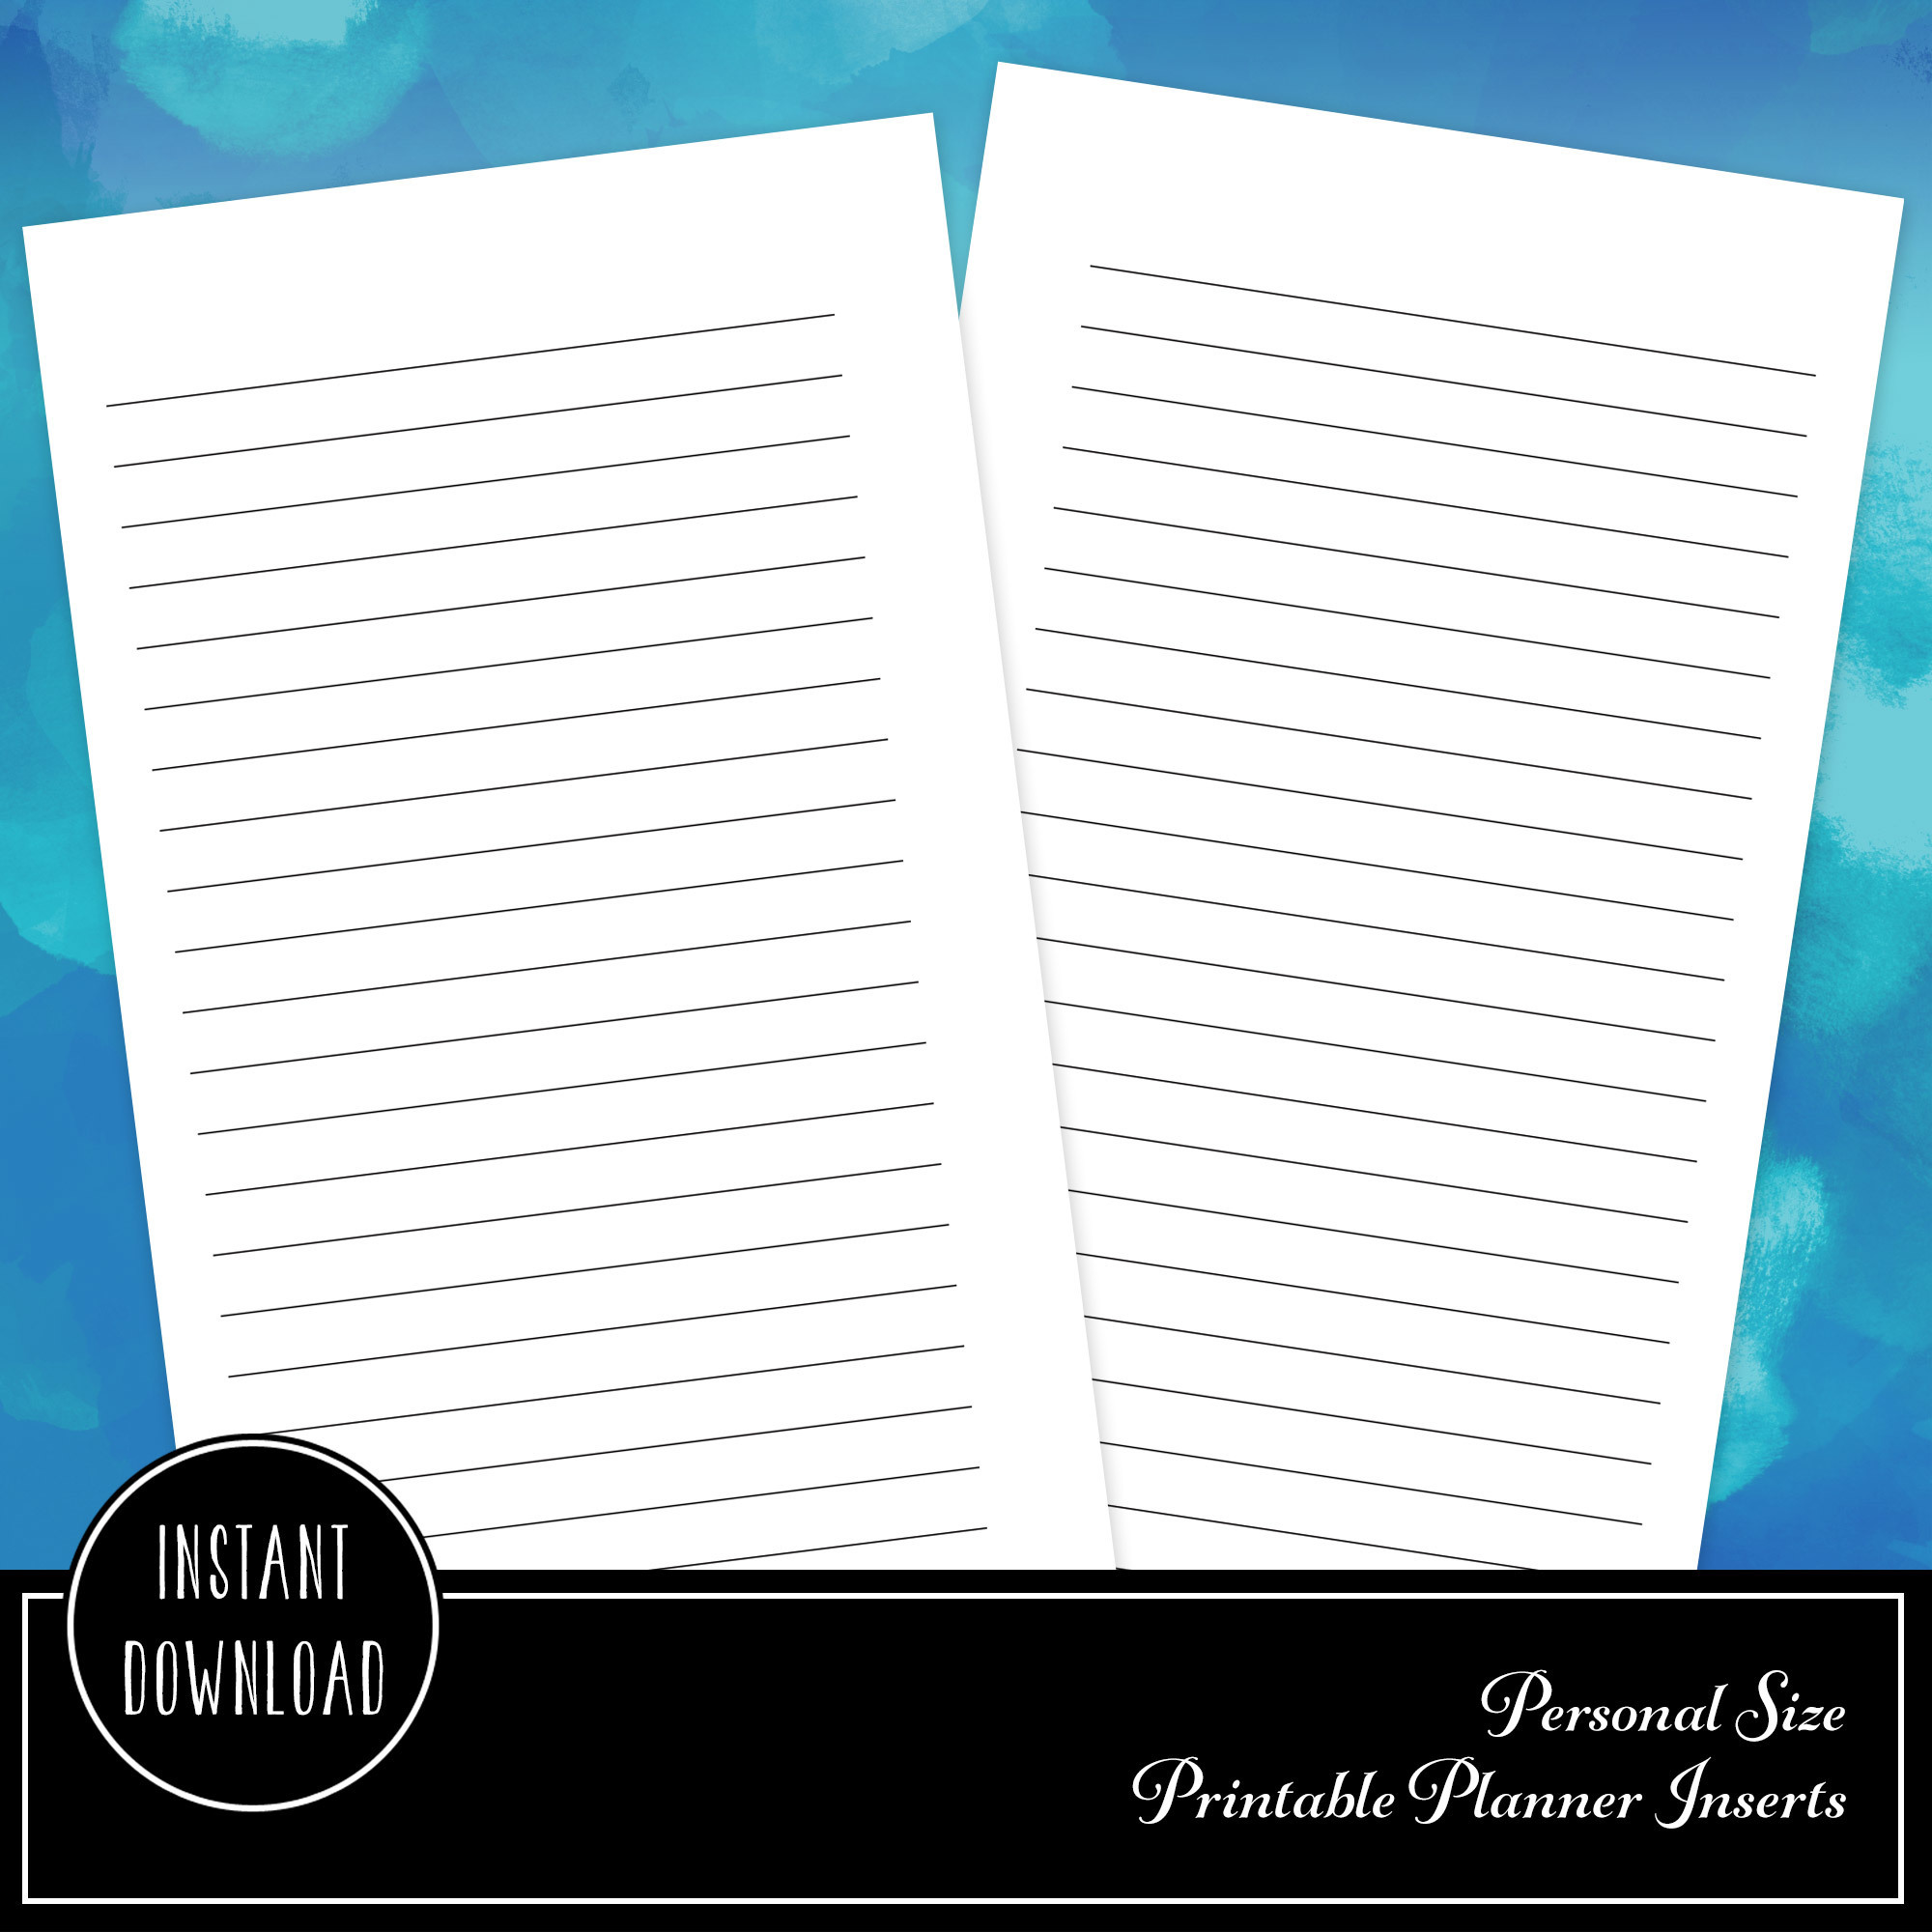 Note Lines Personal Size Printable Planner Inserts dbr_notelist